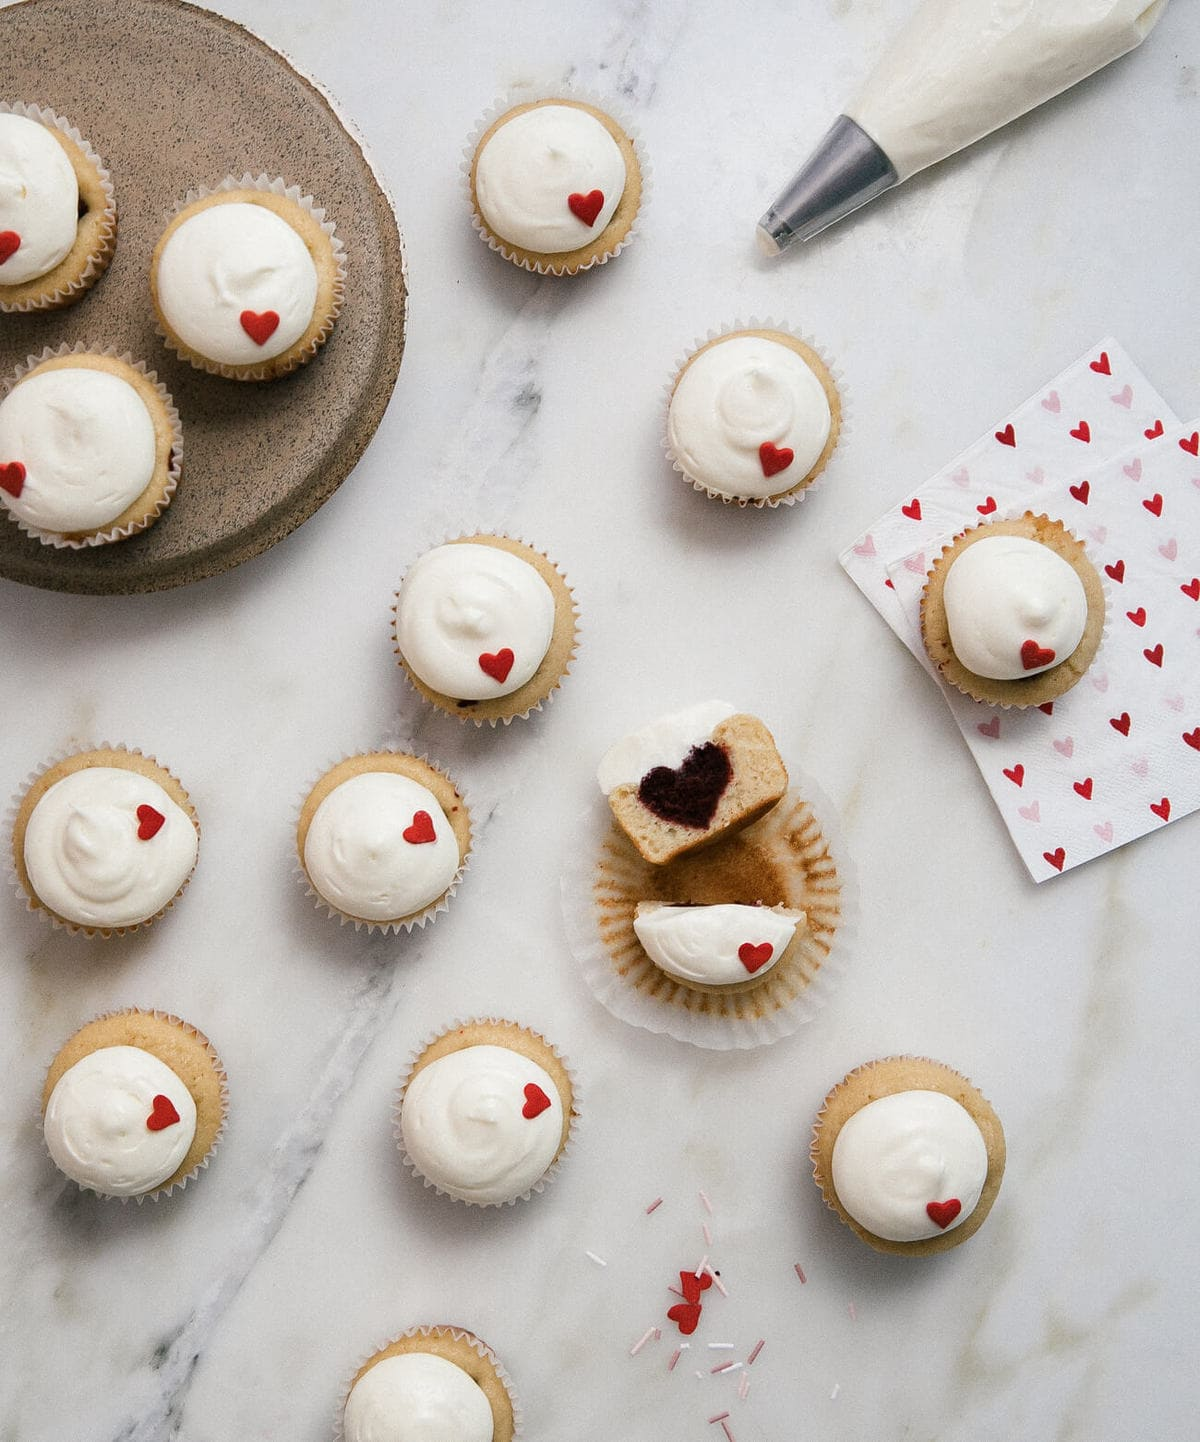 Red Velvet Heart Surprise Cupcakes